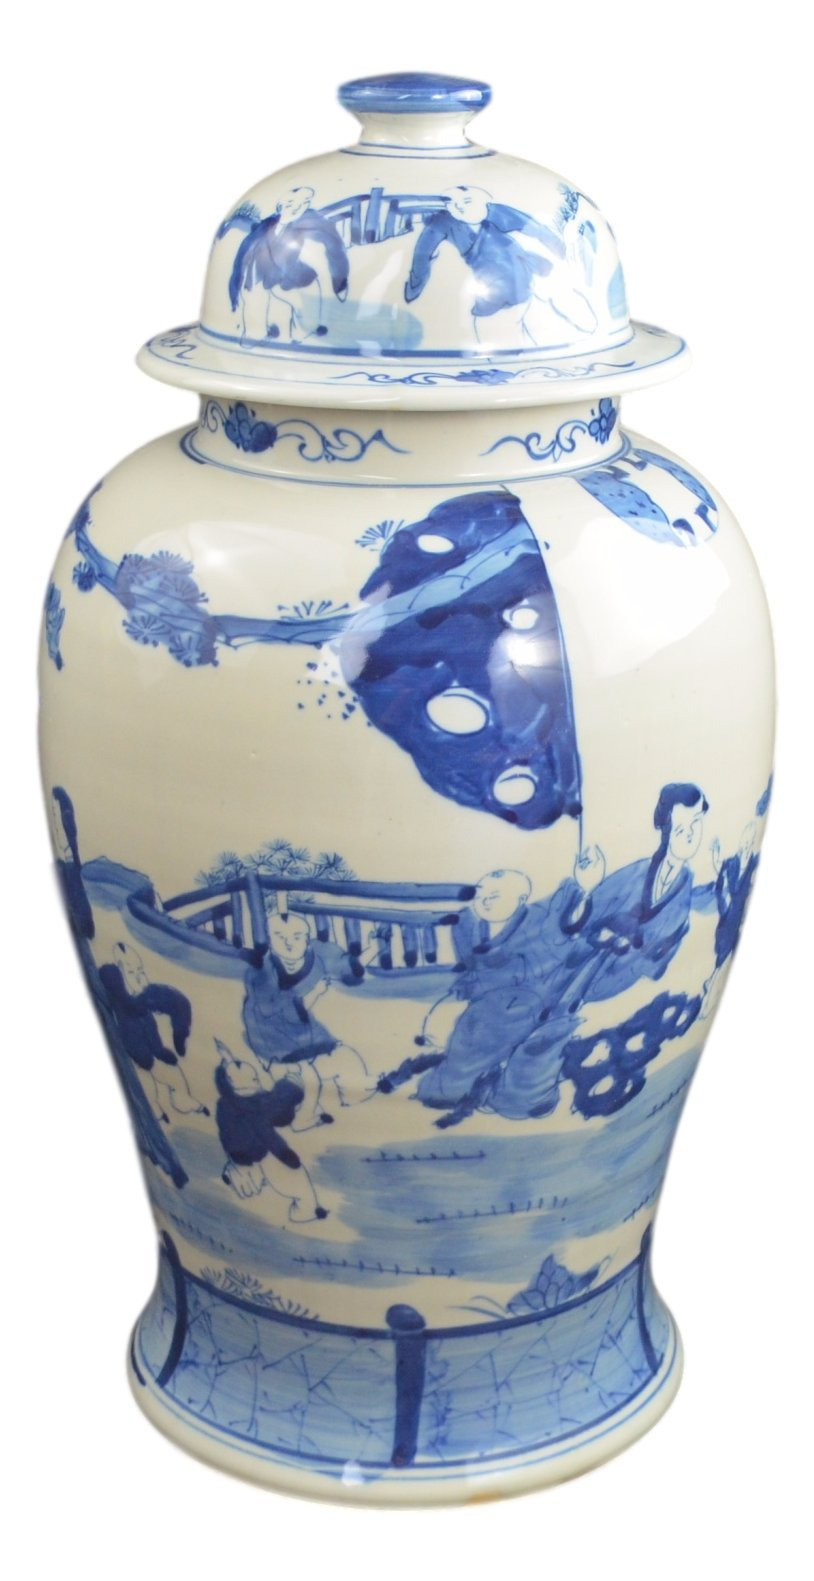 19'' Antique Finish Blue and White Porcelain Children Play Temple Ceramic Jar Vase, China Ming Style, Jingdezhen (L2)